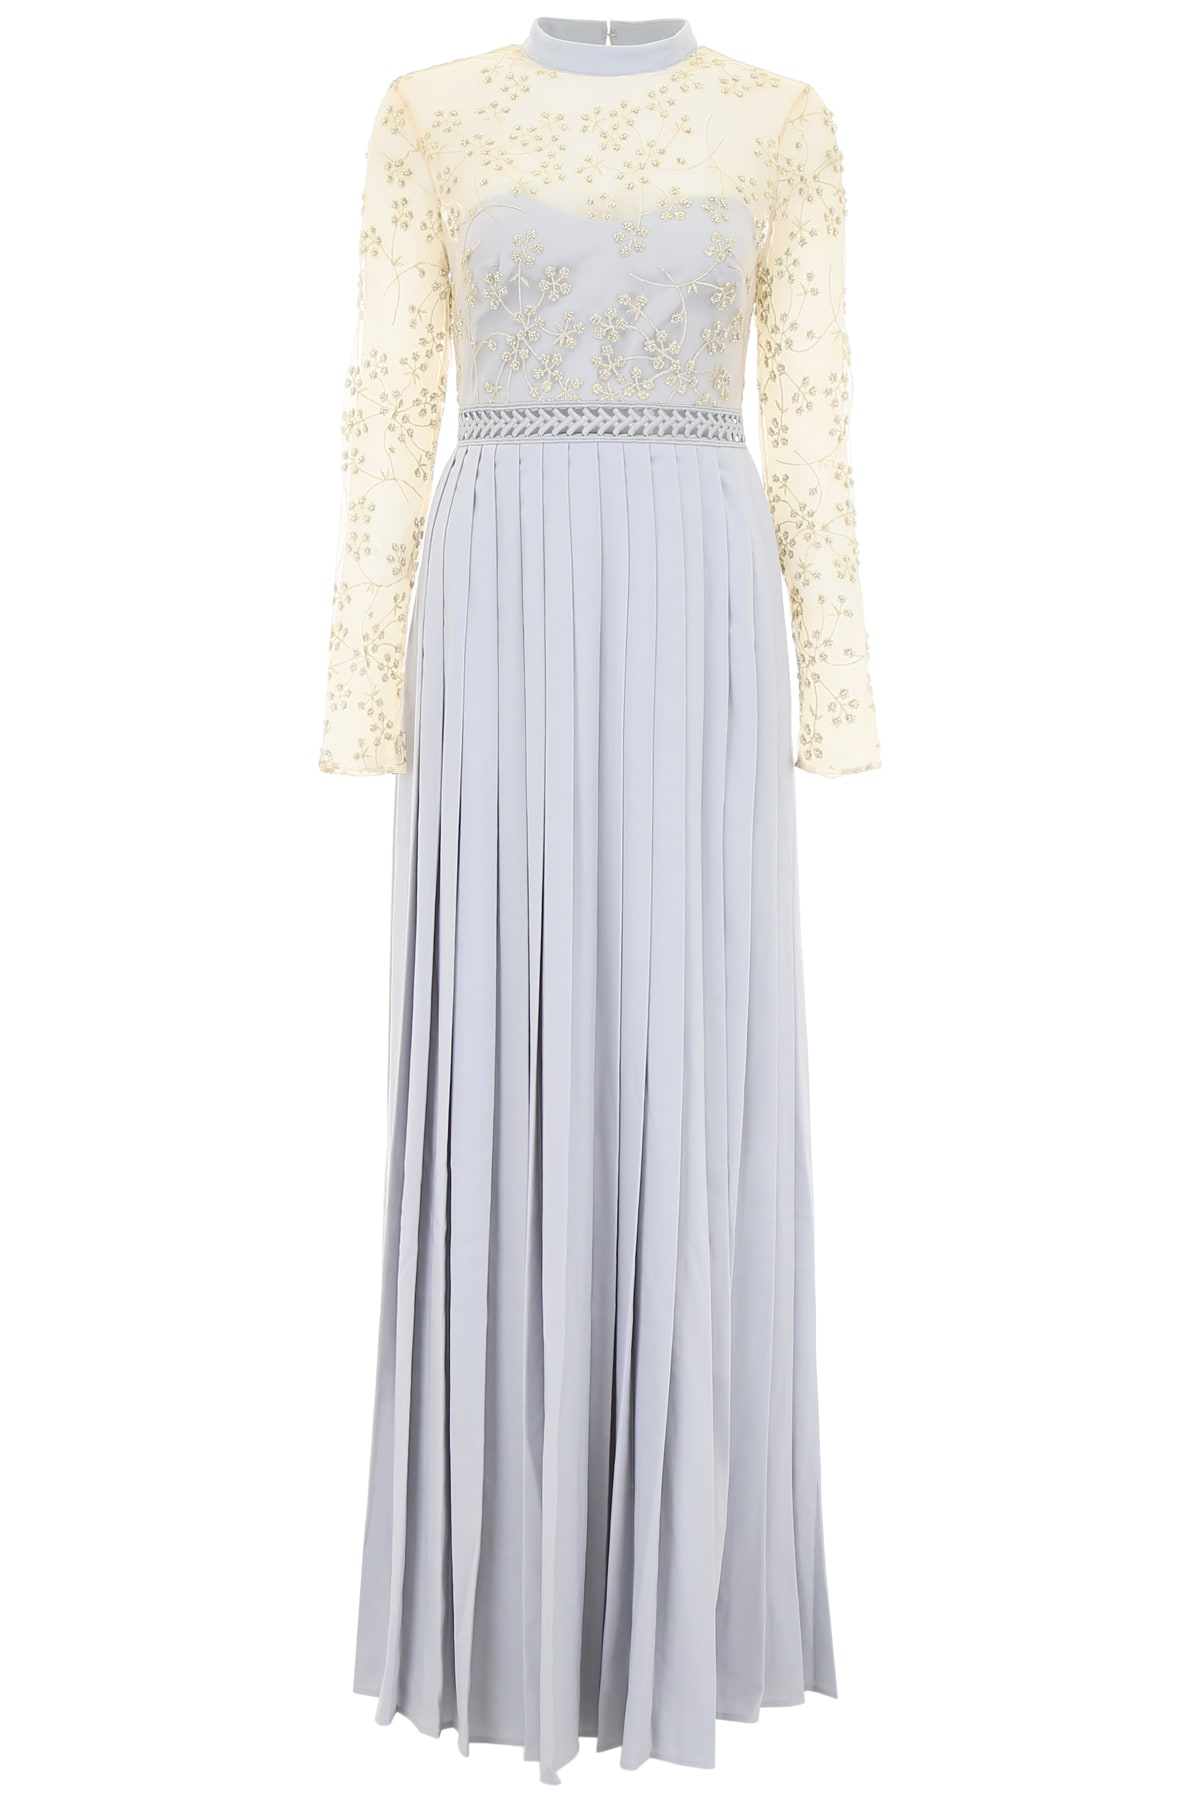 self-portrait Maxi Dress With Lace And Pearls